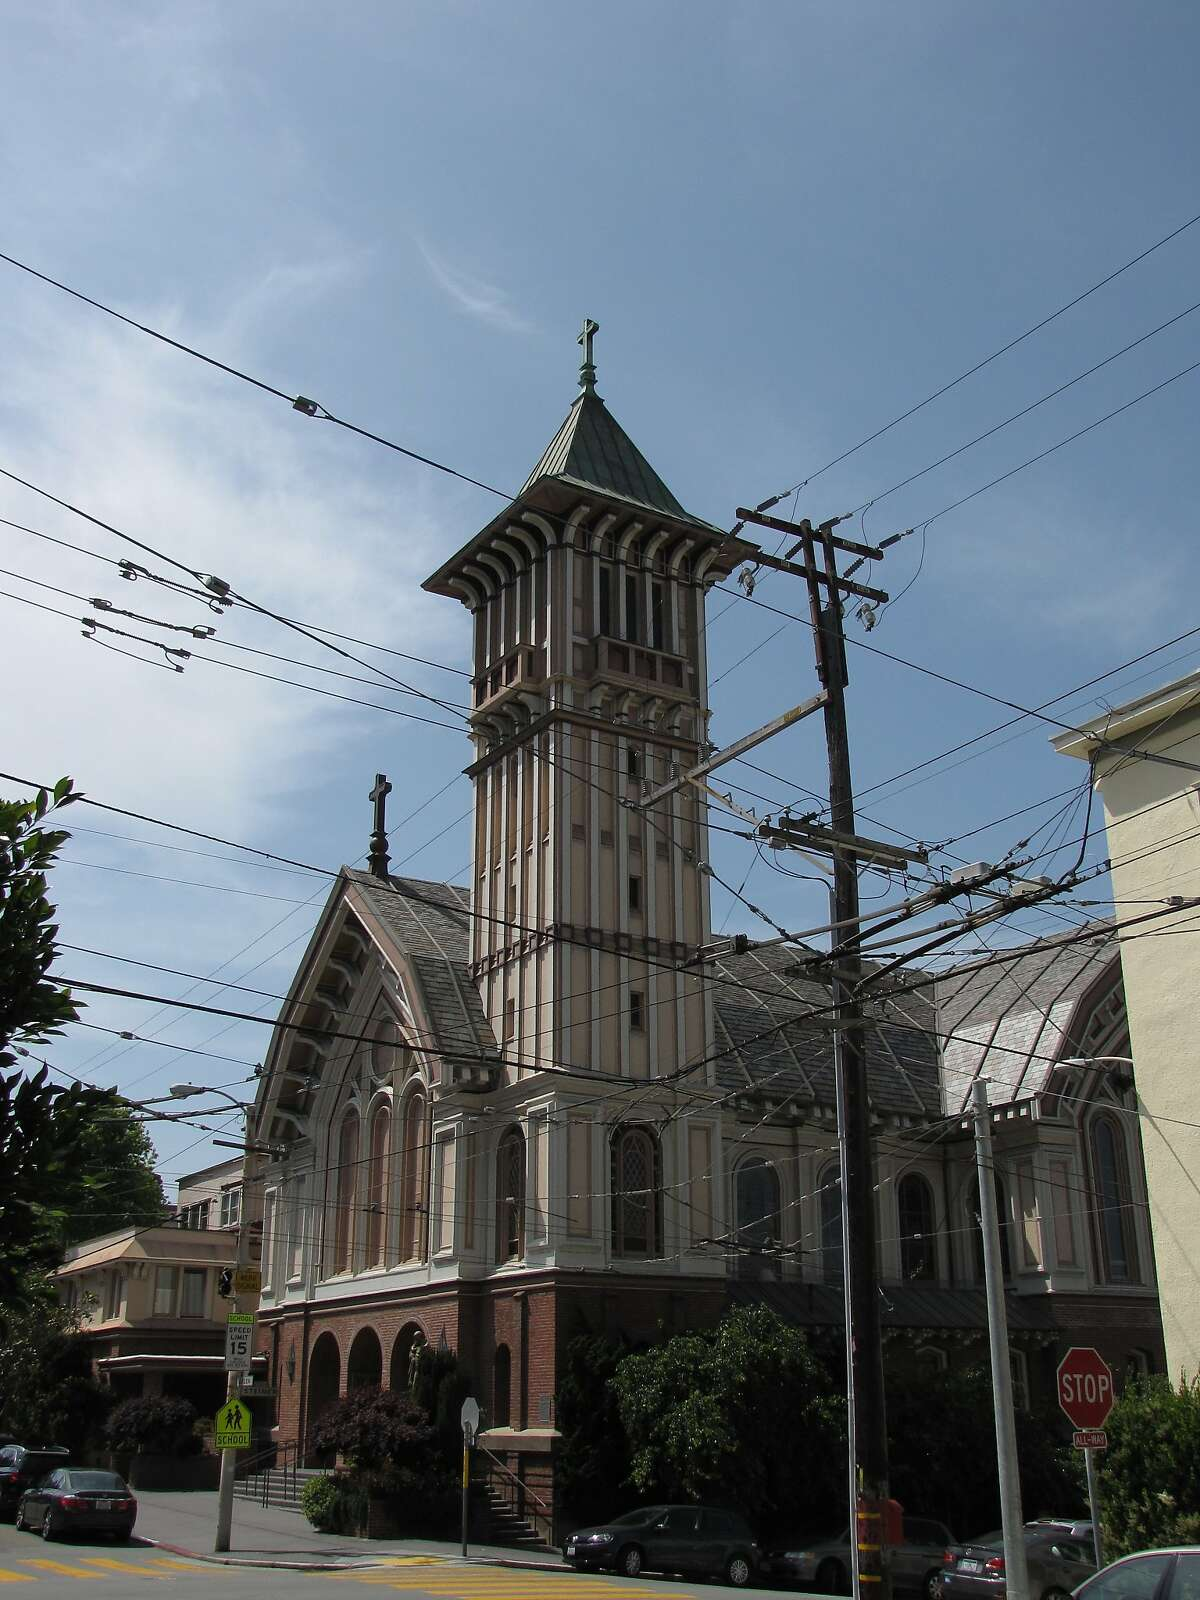 St. Vincent de Paul church at Green and Steiner streets in the Cow Hollow neighborhood of Pacific Heights. The architect was the firm of Shea & Lofquist.